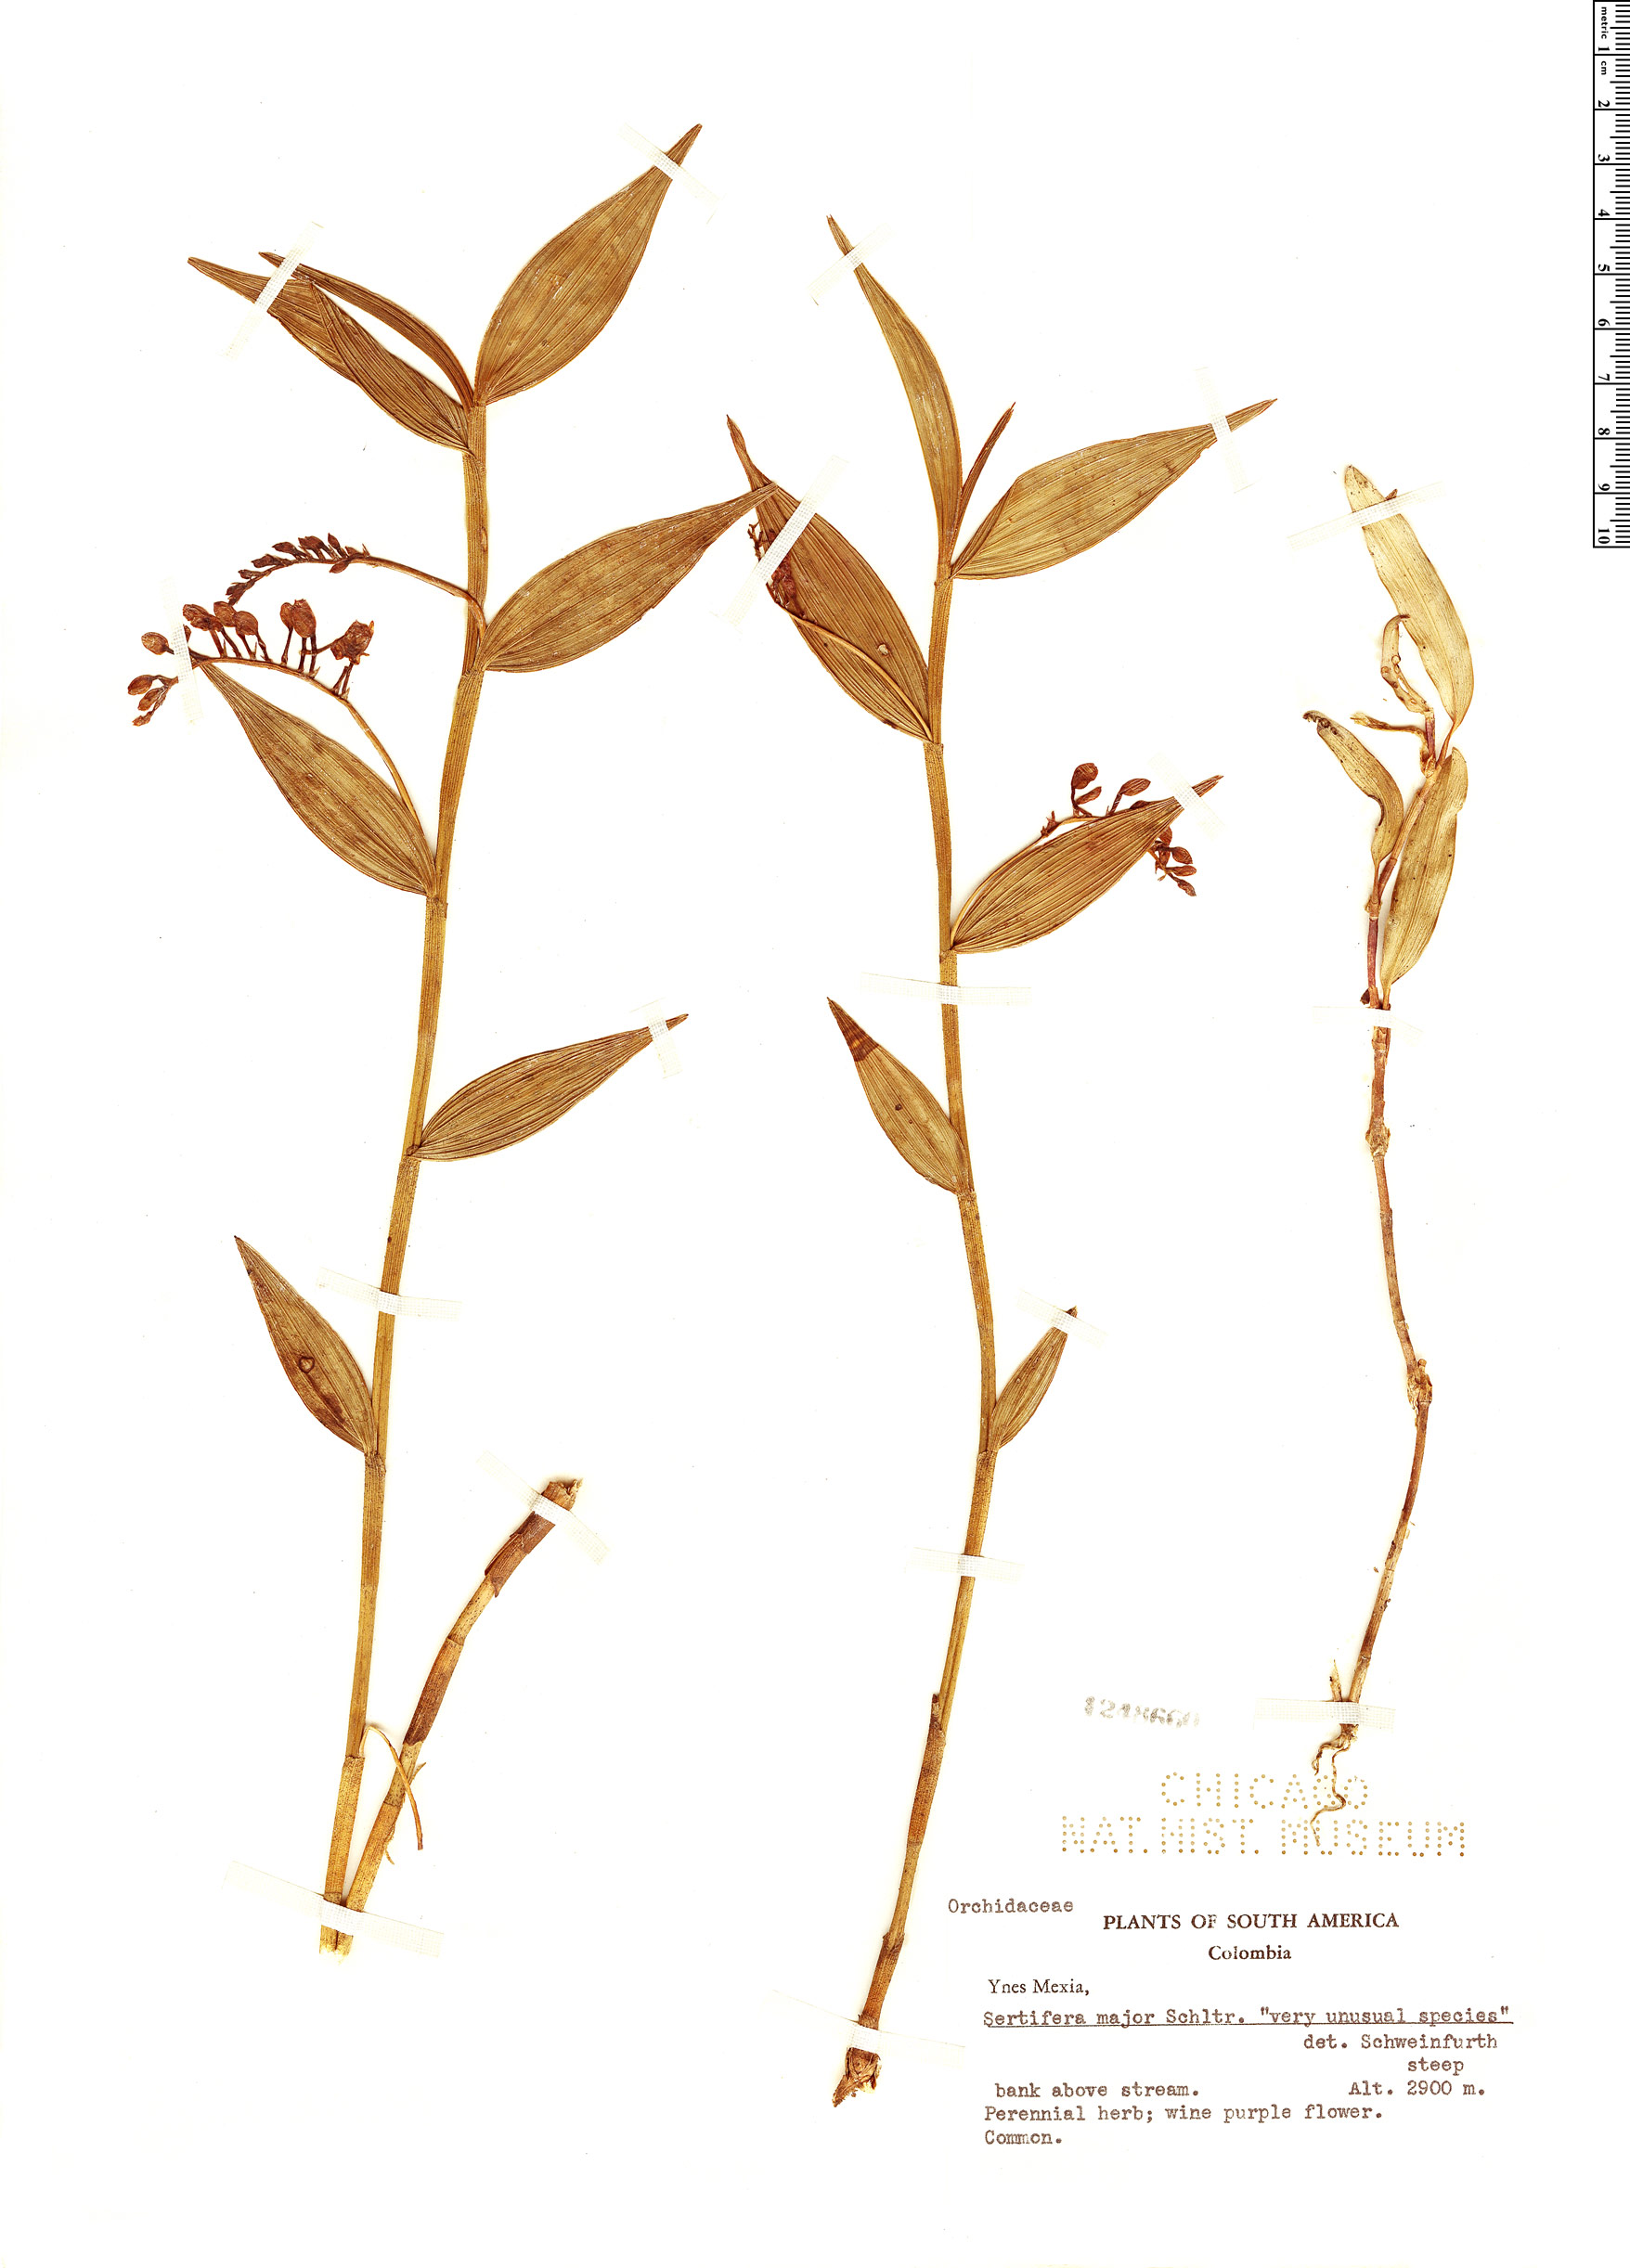 Specimen: Sertifera major